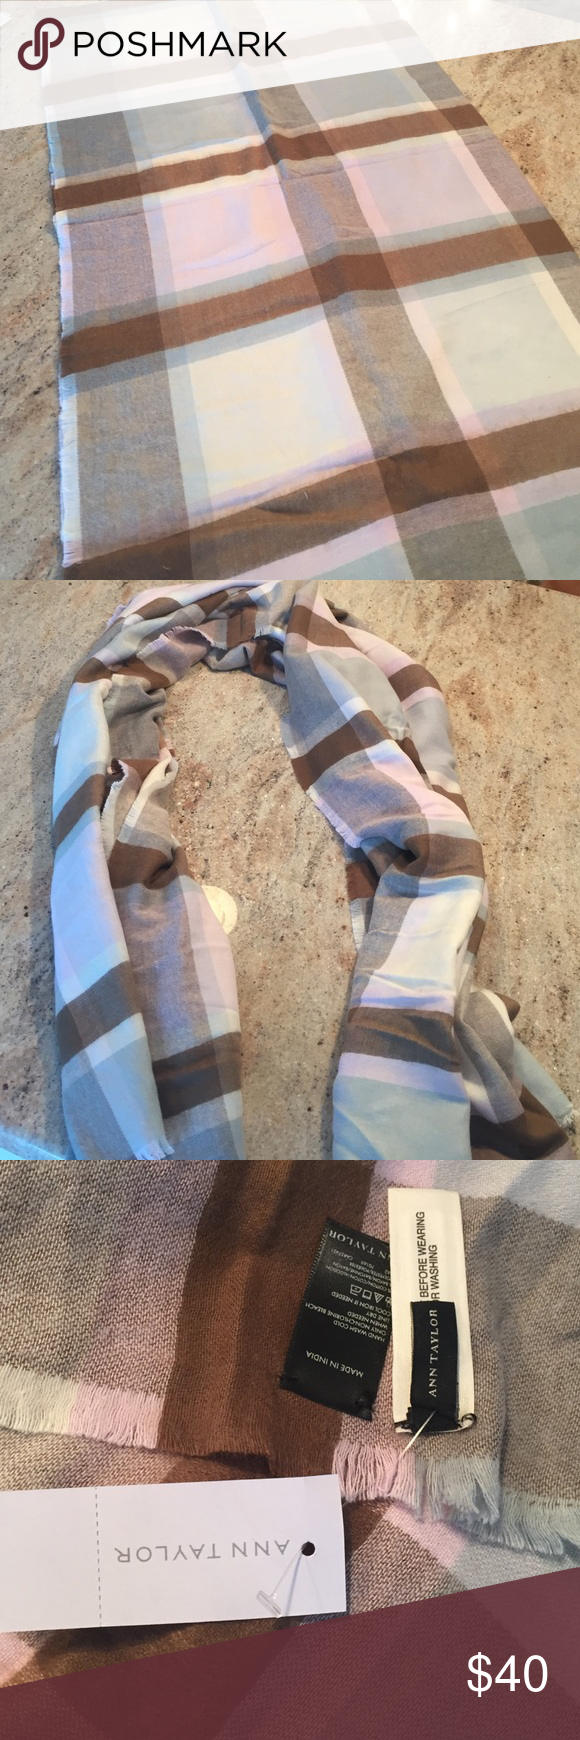 Nwt Blanket Scarf Light Pink Mint And Brown Blanket Scarf Beyond Cozy Ann Taylor Accessories Scarves Wra Blanket Scarf Reusable Tote Bags Scarf Accessory